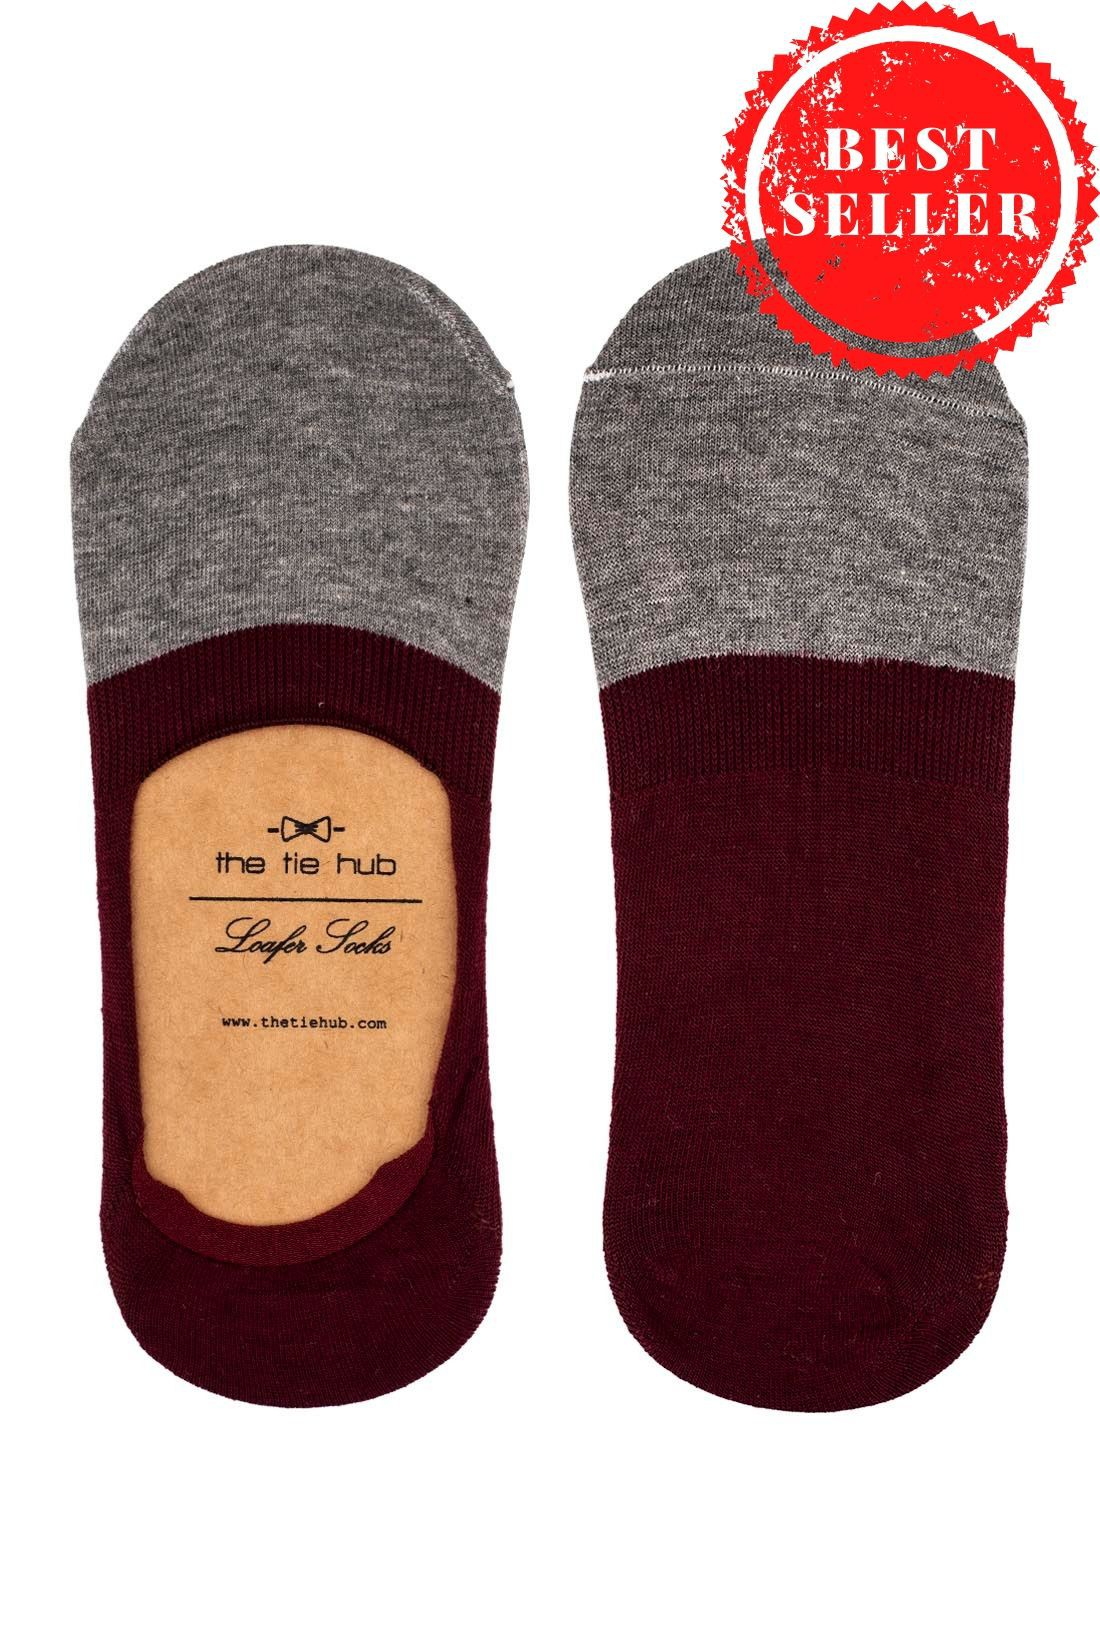 Parker Two Color Loafer socks - Maroon/Grey